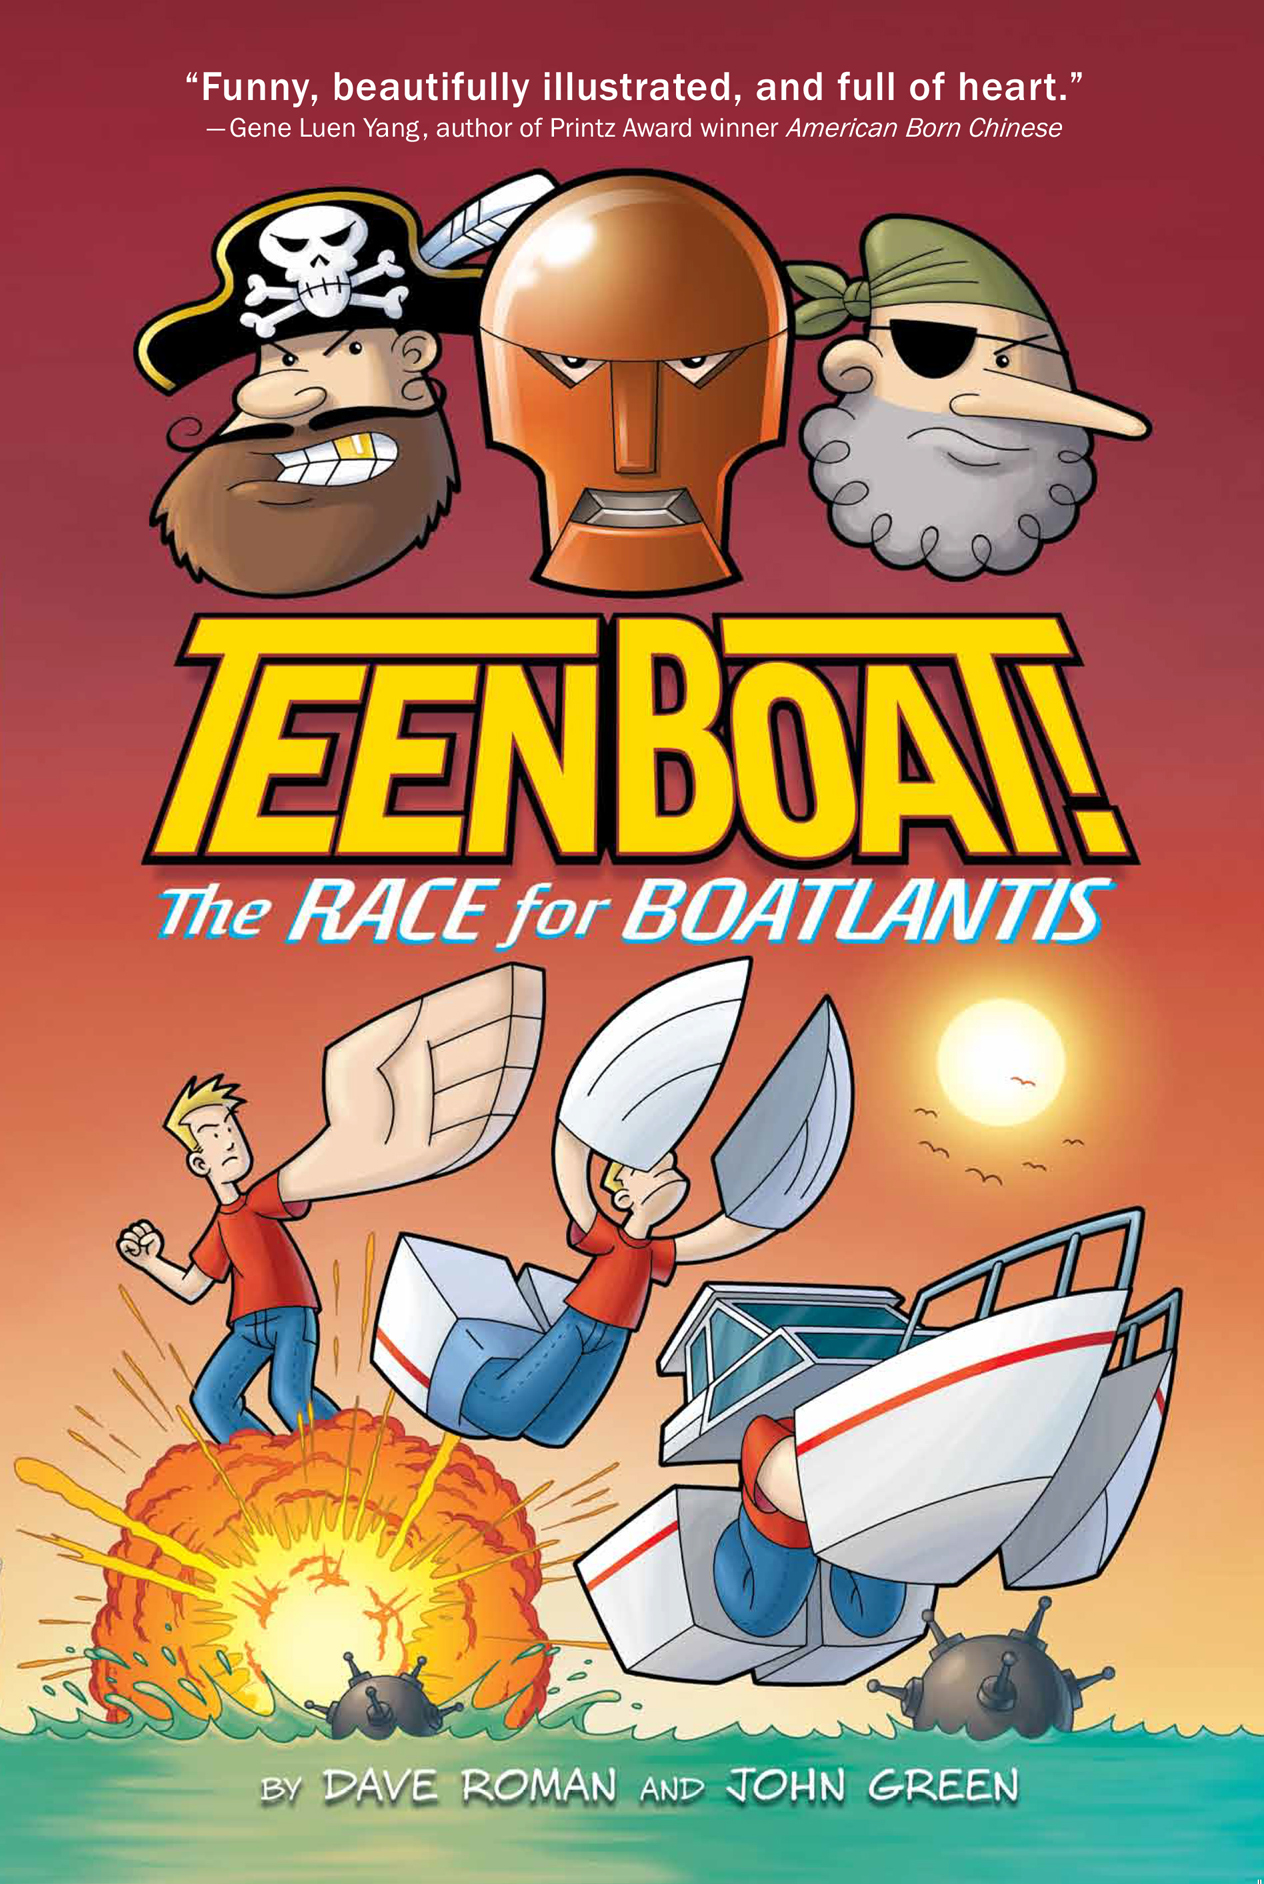 - TEEN BOAT!: The Race for Boatlantis (Clarion Books, Sept 2015) - co-creator / artistTeen Boat has always felt different from the other kids, which makes sense, since he's the only one who can transform into a yacht. Now, just before his high school graduation, he embarks on an epic quest of self-discovery. He learns of a mysterious city called Boatlantis, where boats are at the top of the social ladder. Can it be true? Has he finally found the place where a half boy/half boat belongs? Or will he always be torn between two worlds?